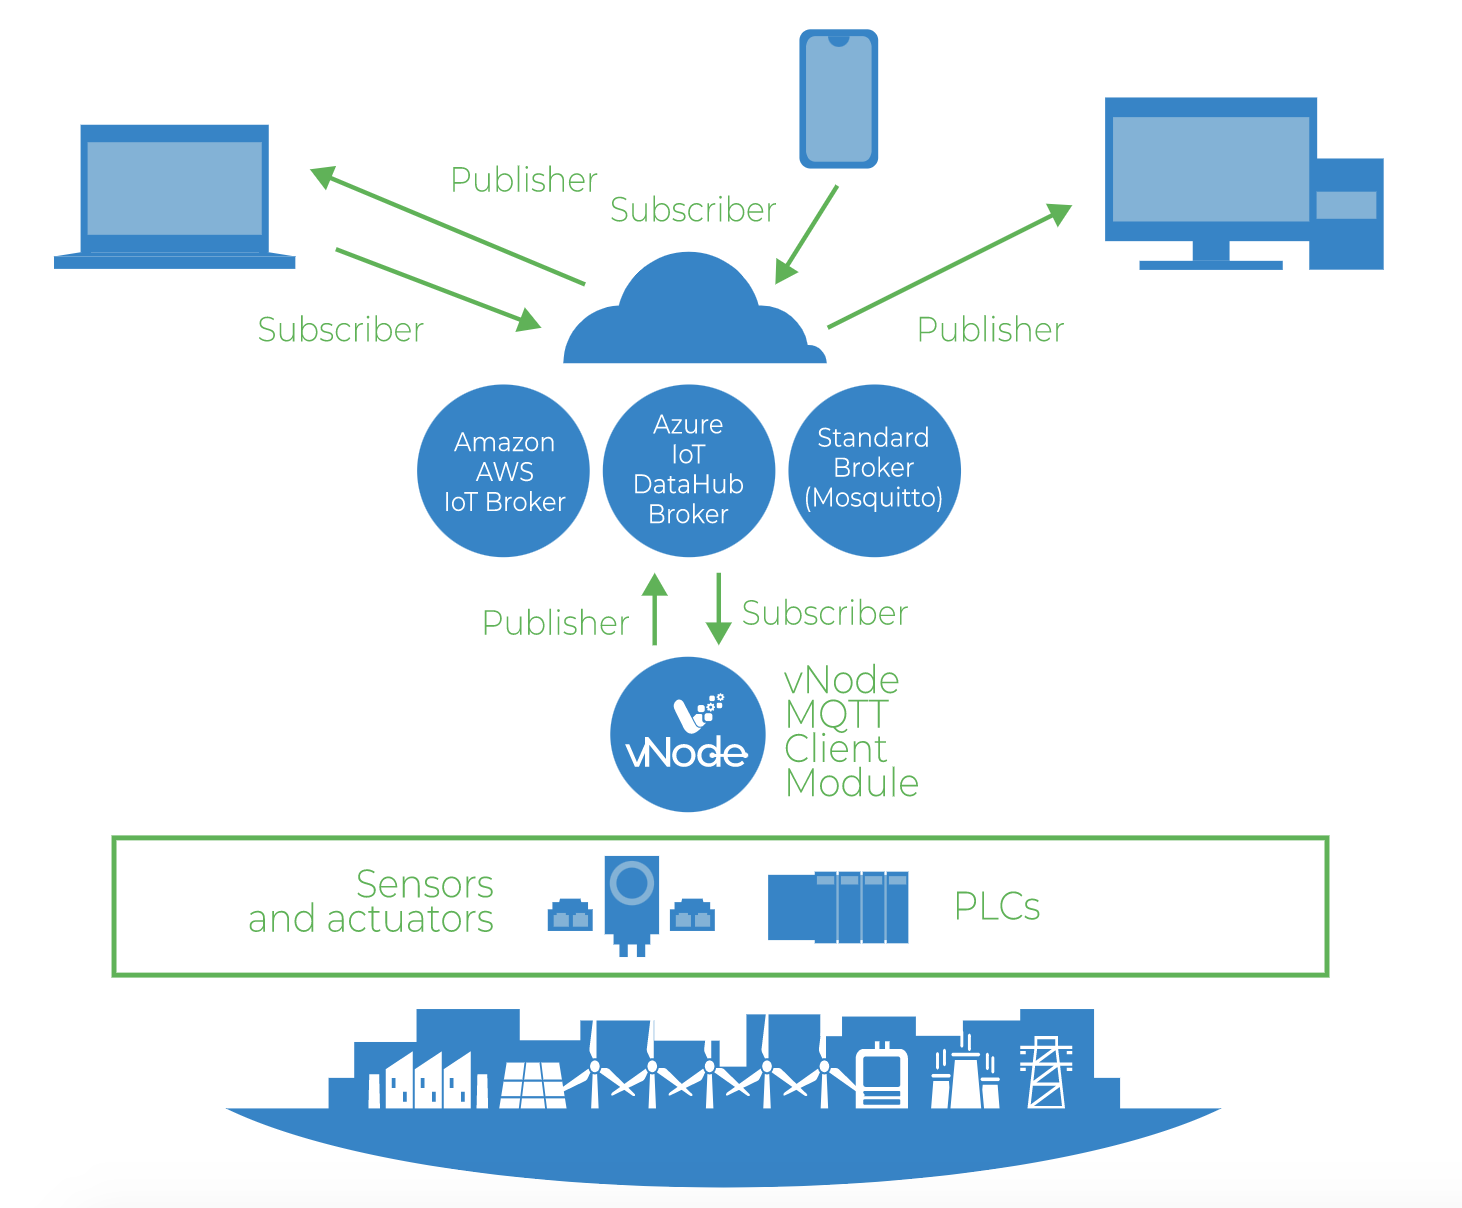 Connect your plant's PLCs or Control Devices to any MQTT broker in the Cloud